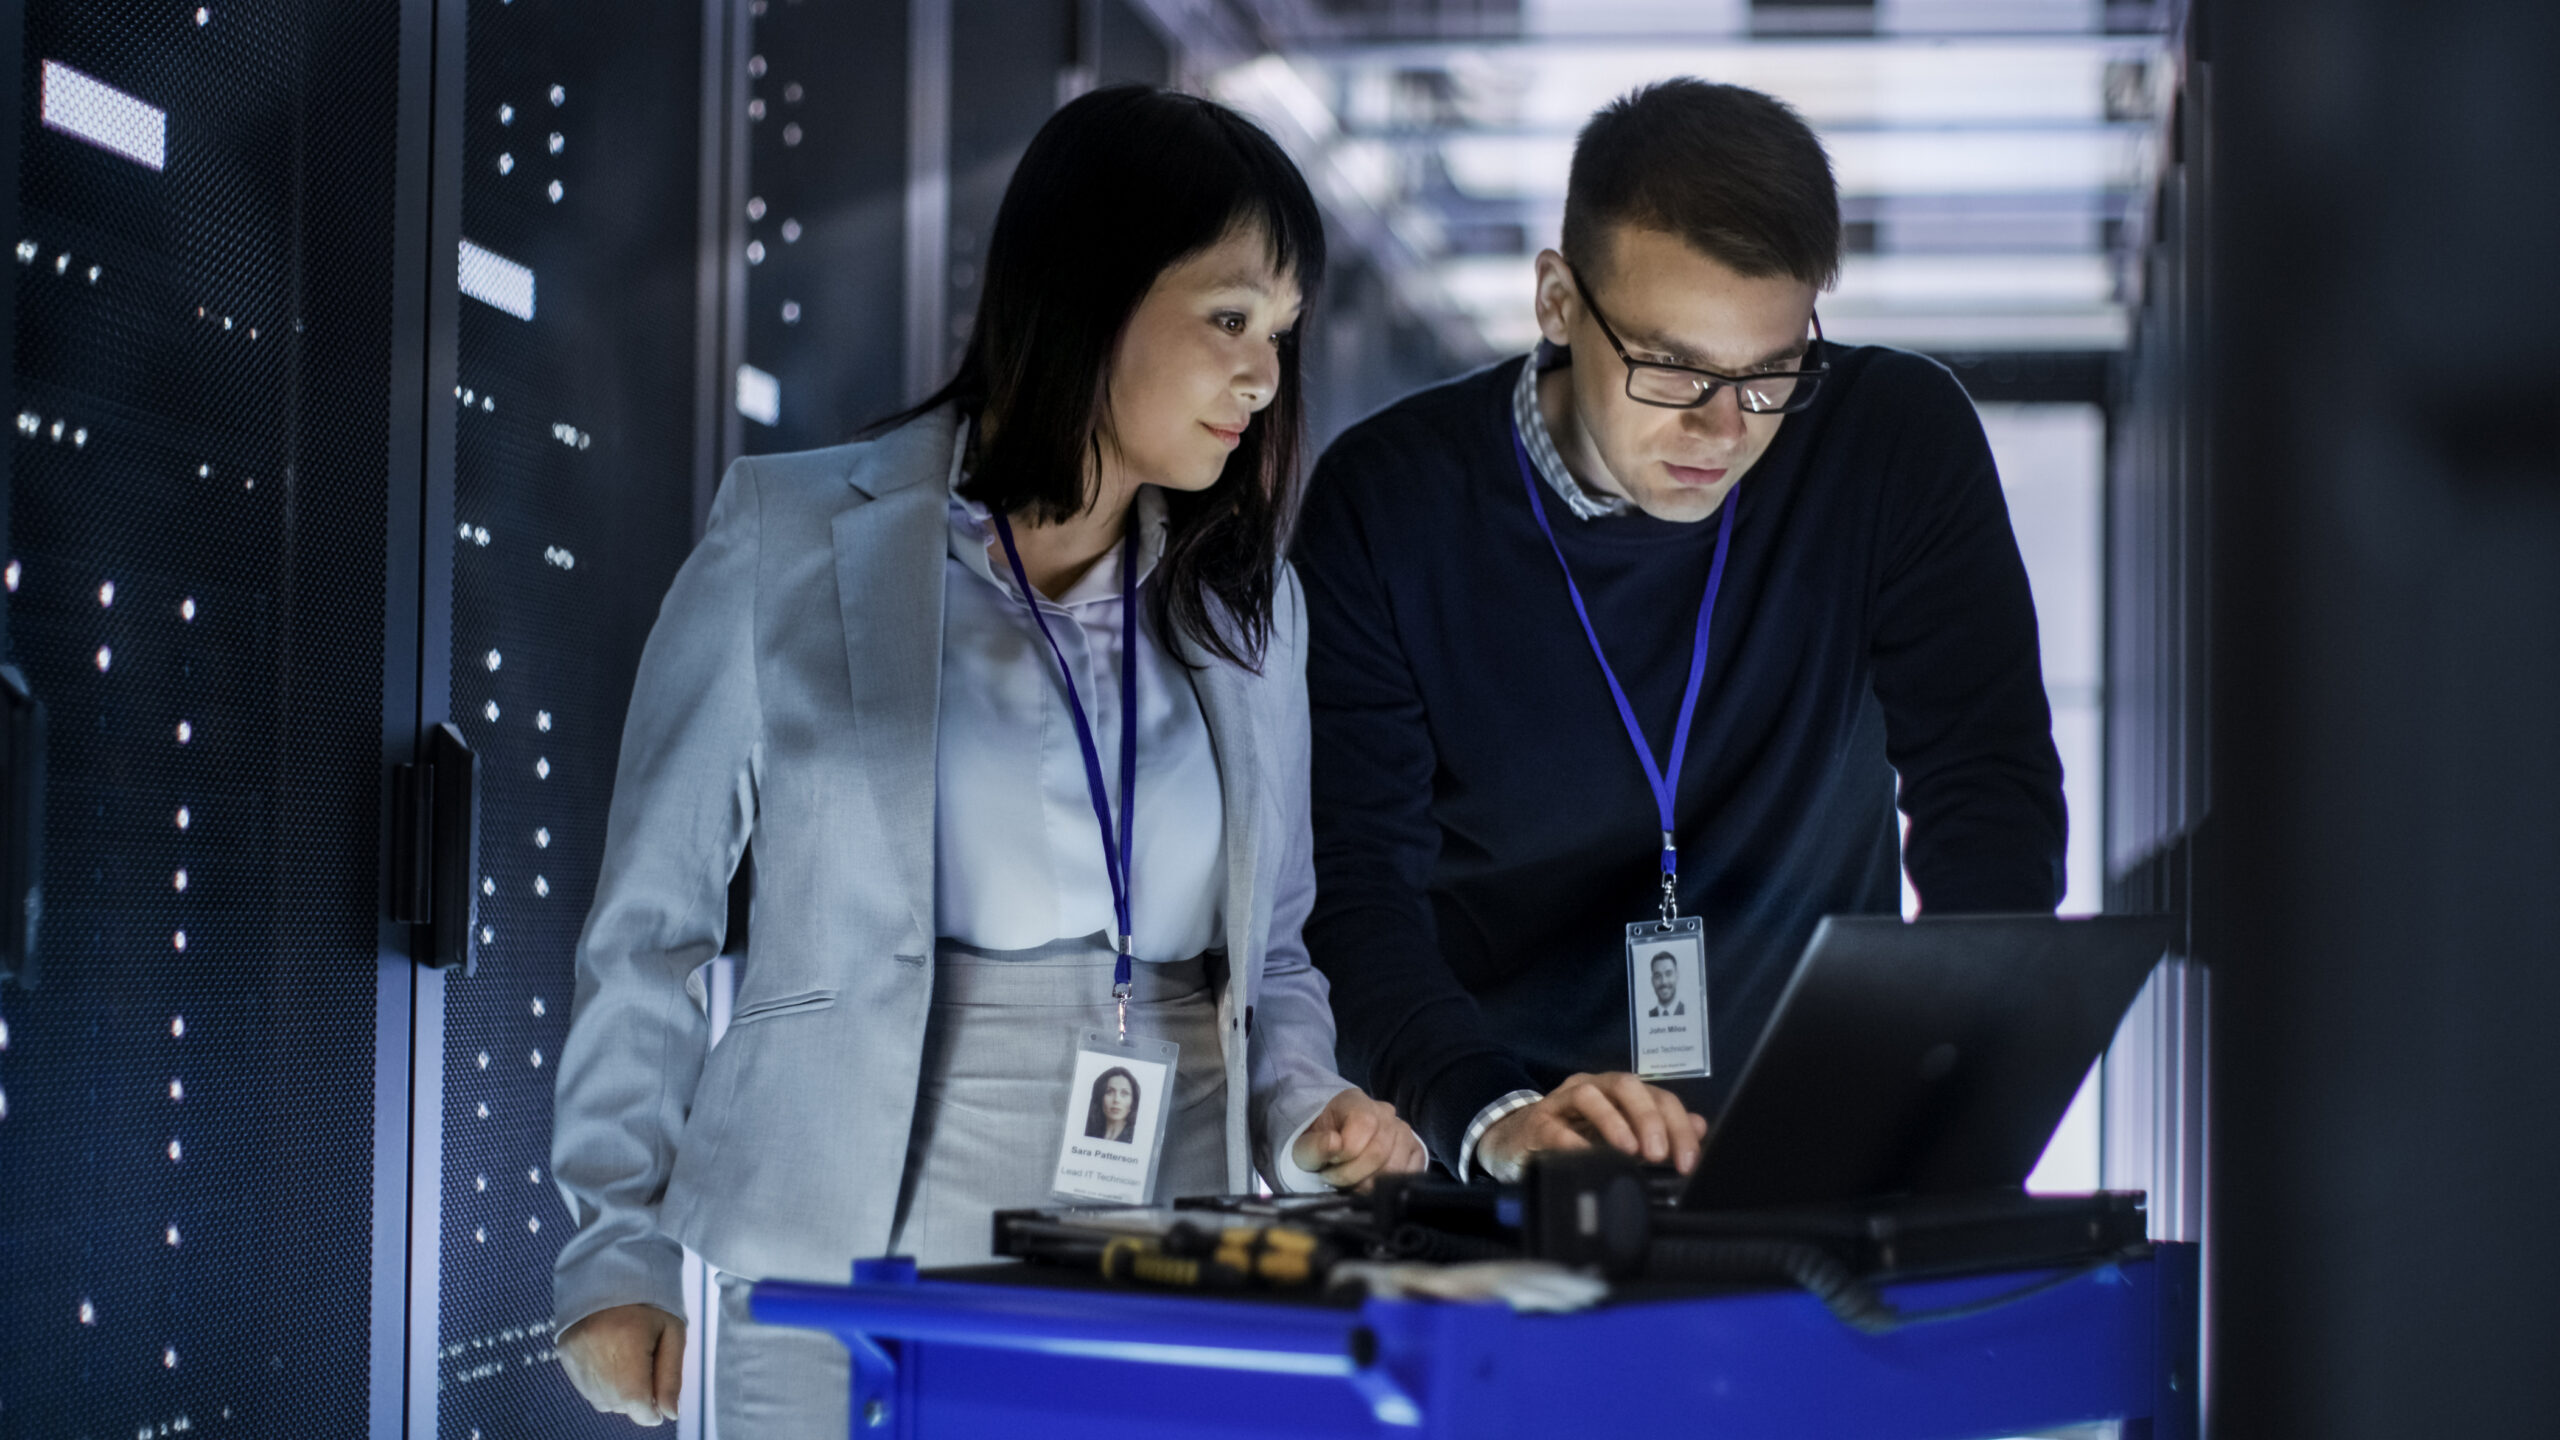 Caucasian Male and Asian Female IT Technicians Working with Computer Crash Cart in Big Data Center full of Rack Servers.